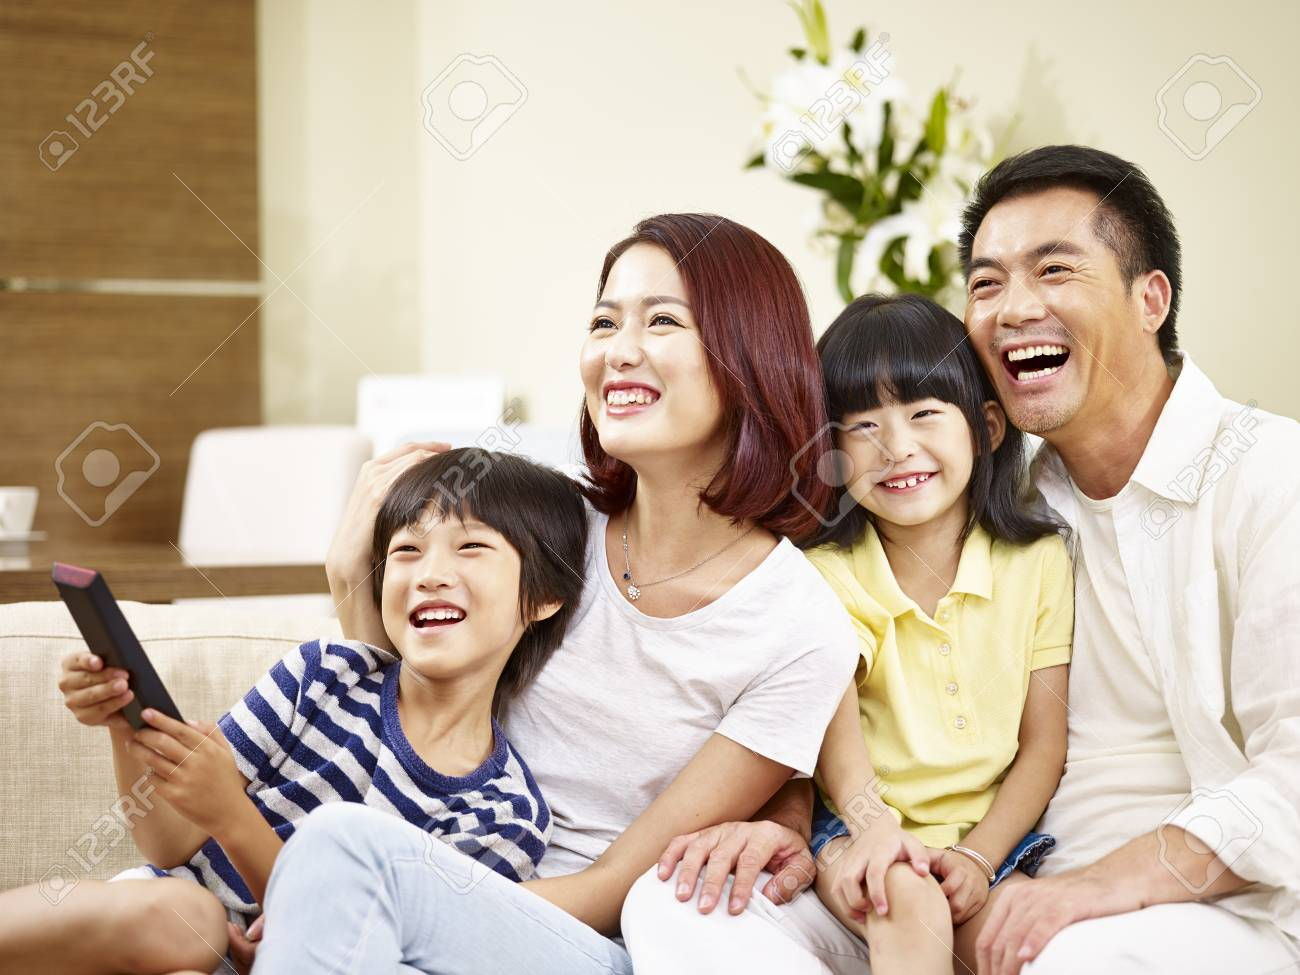 happy asian family with two children sitting on couch at home watching TV. - 92705705